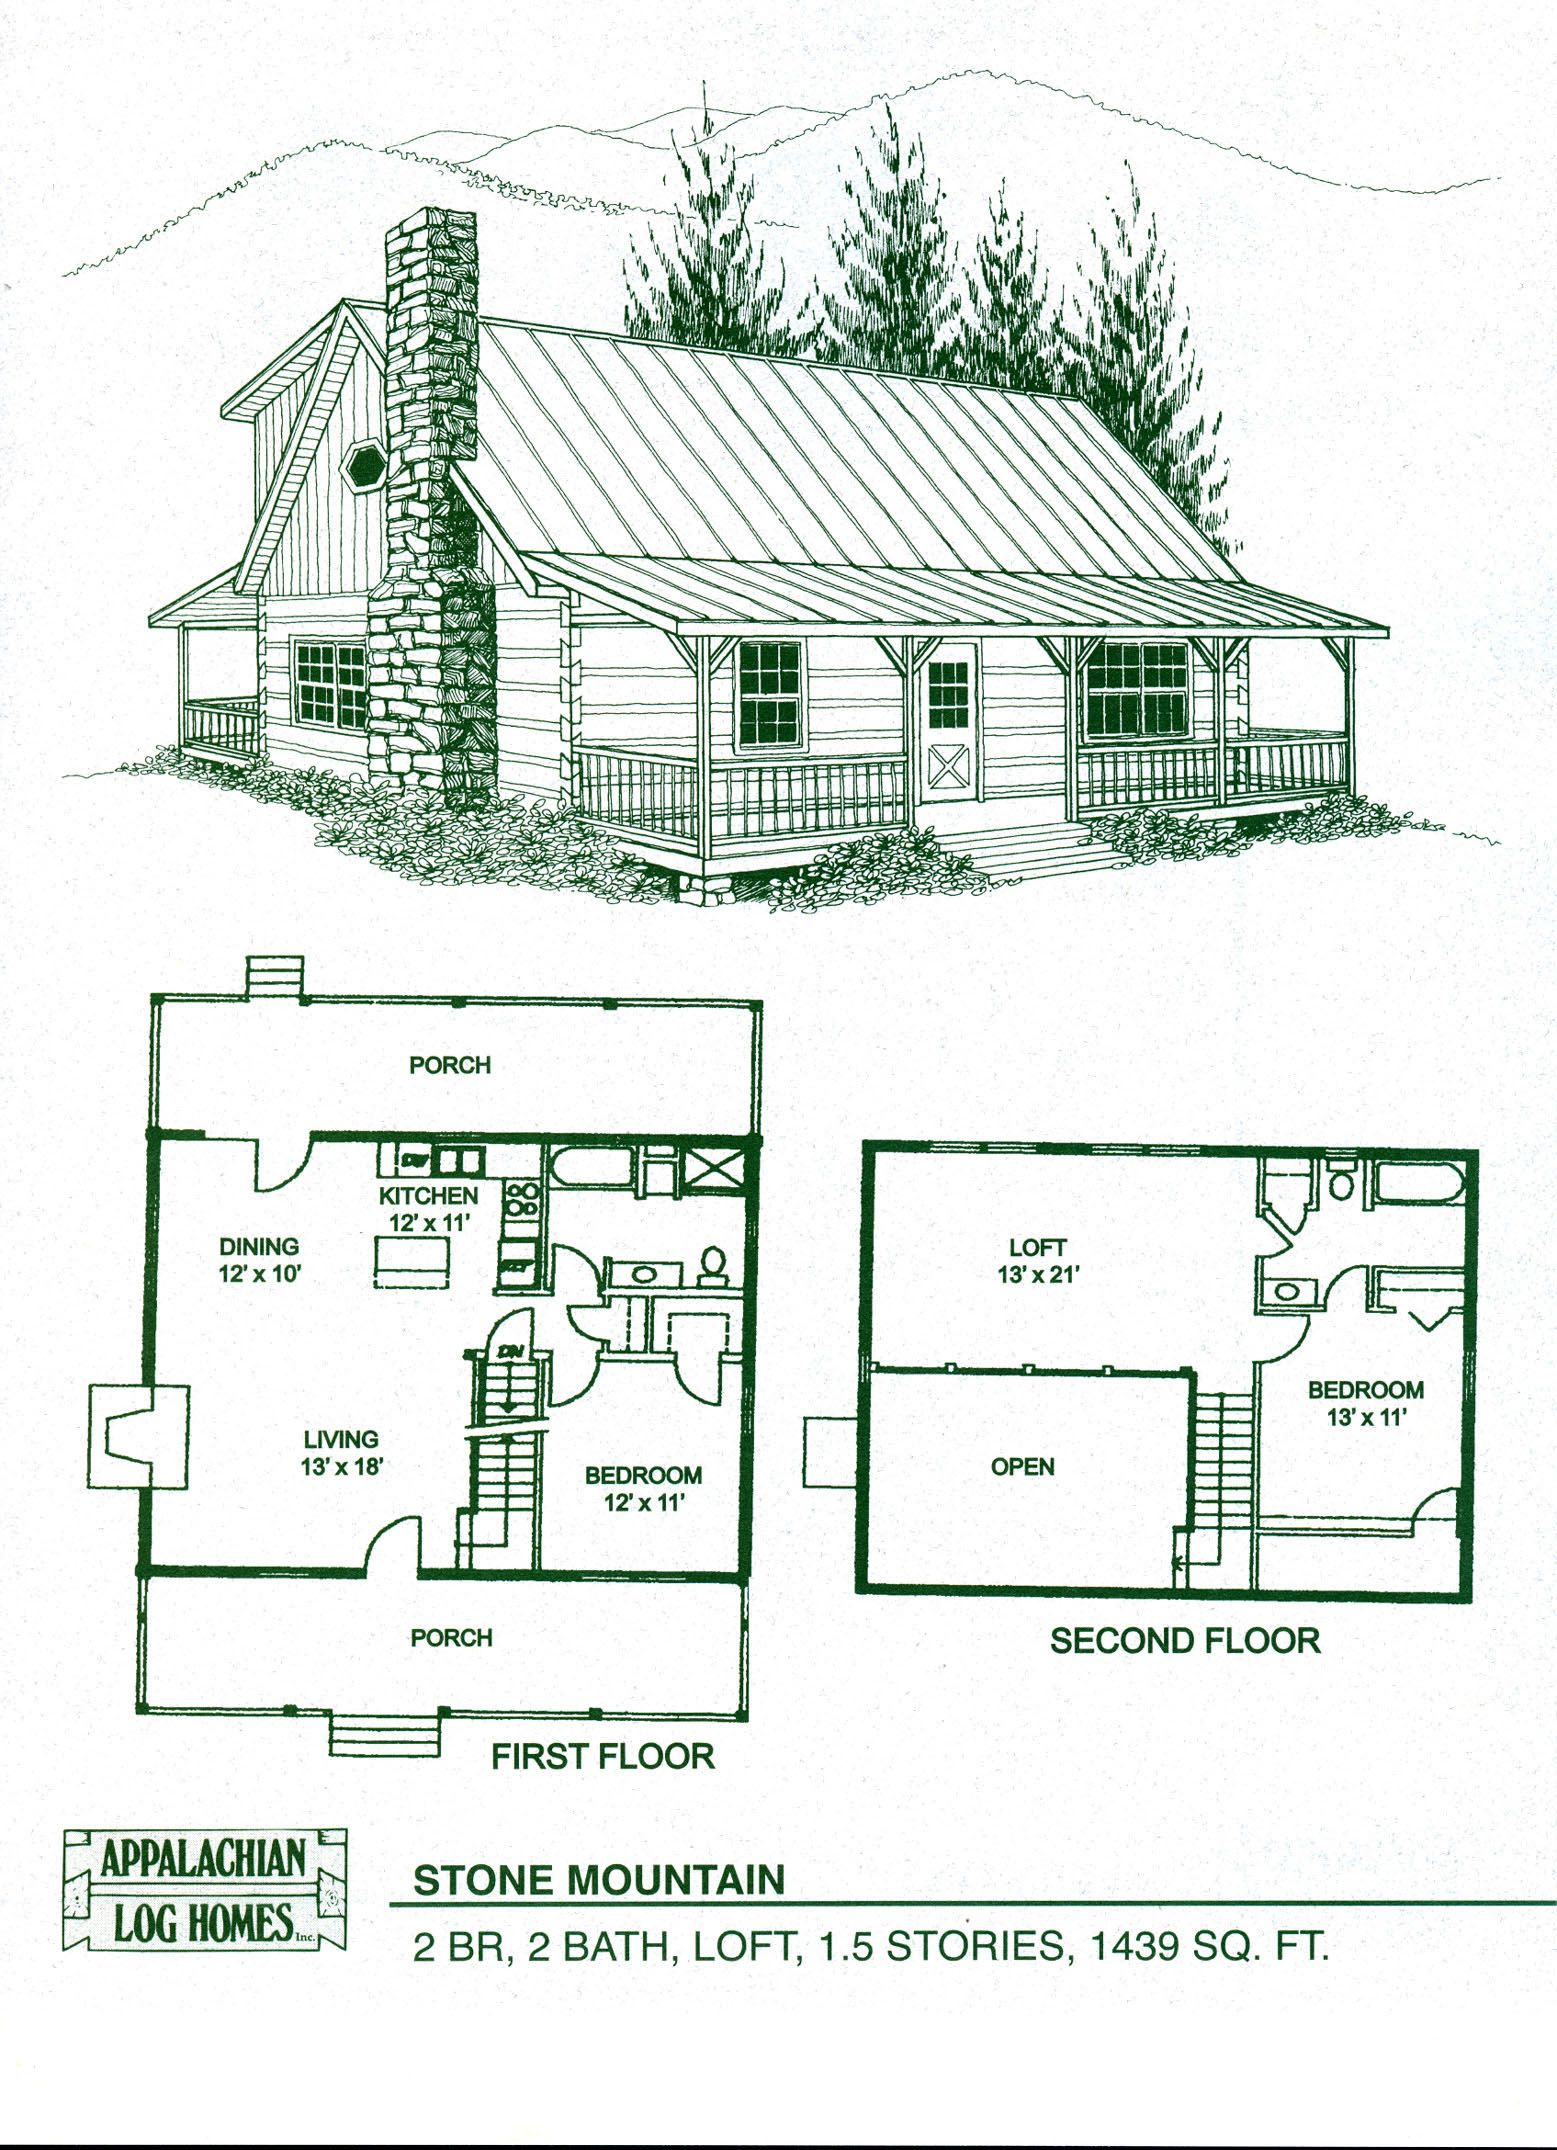 cabin home plans with loft  Log Home Floor Plans Cabin Kits Appalachian